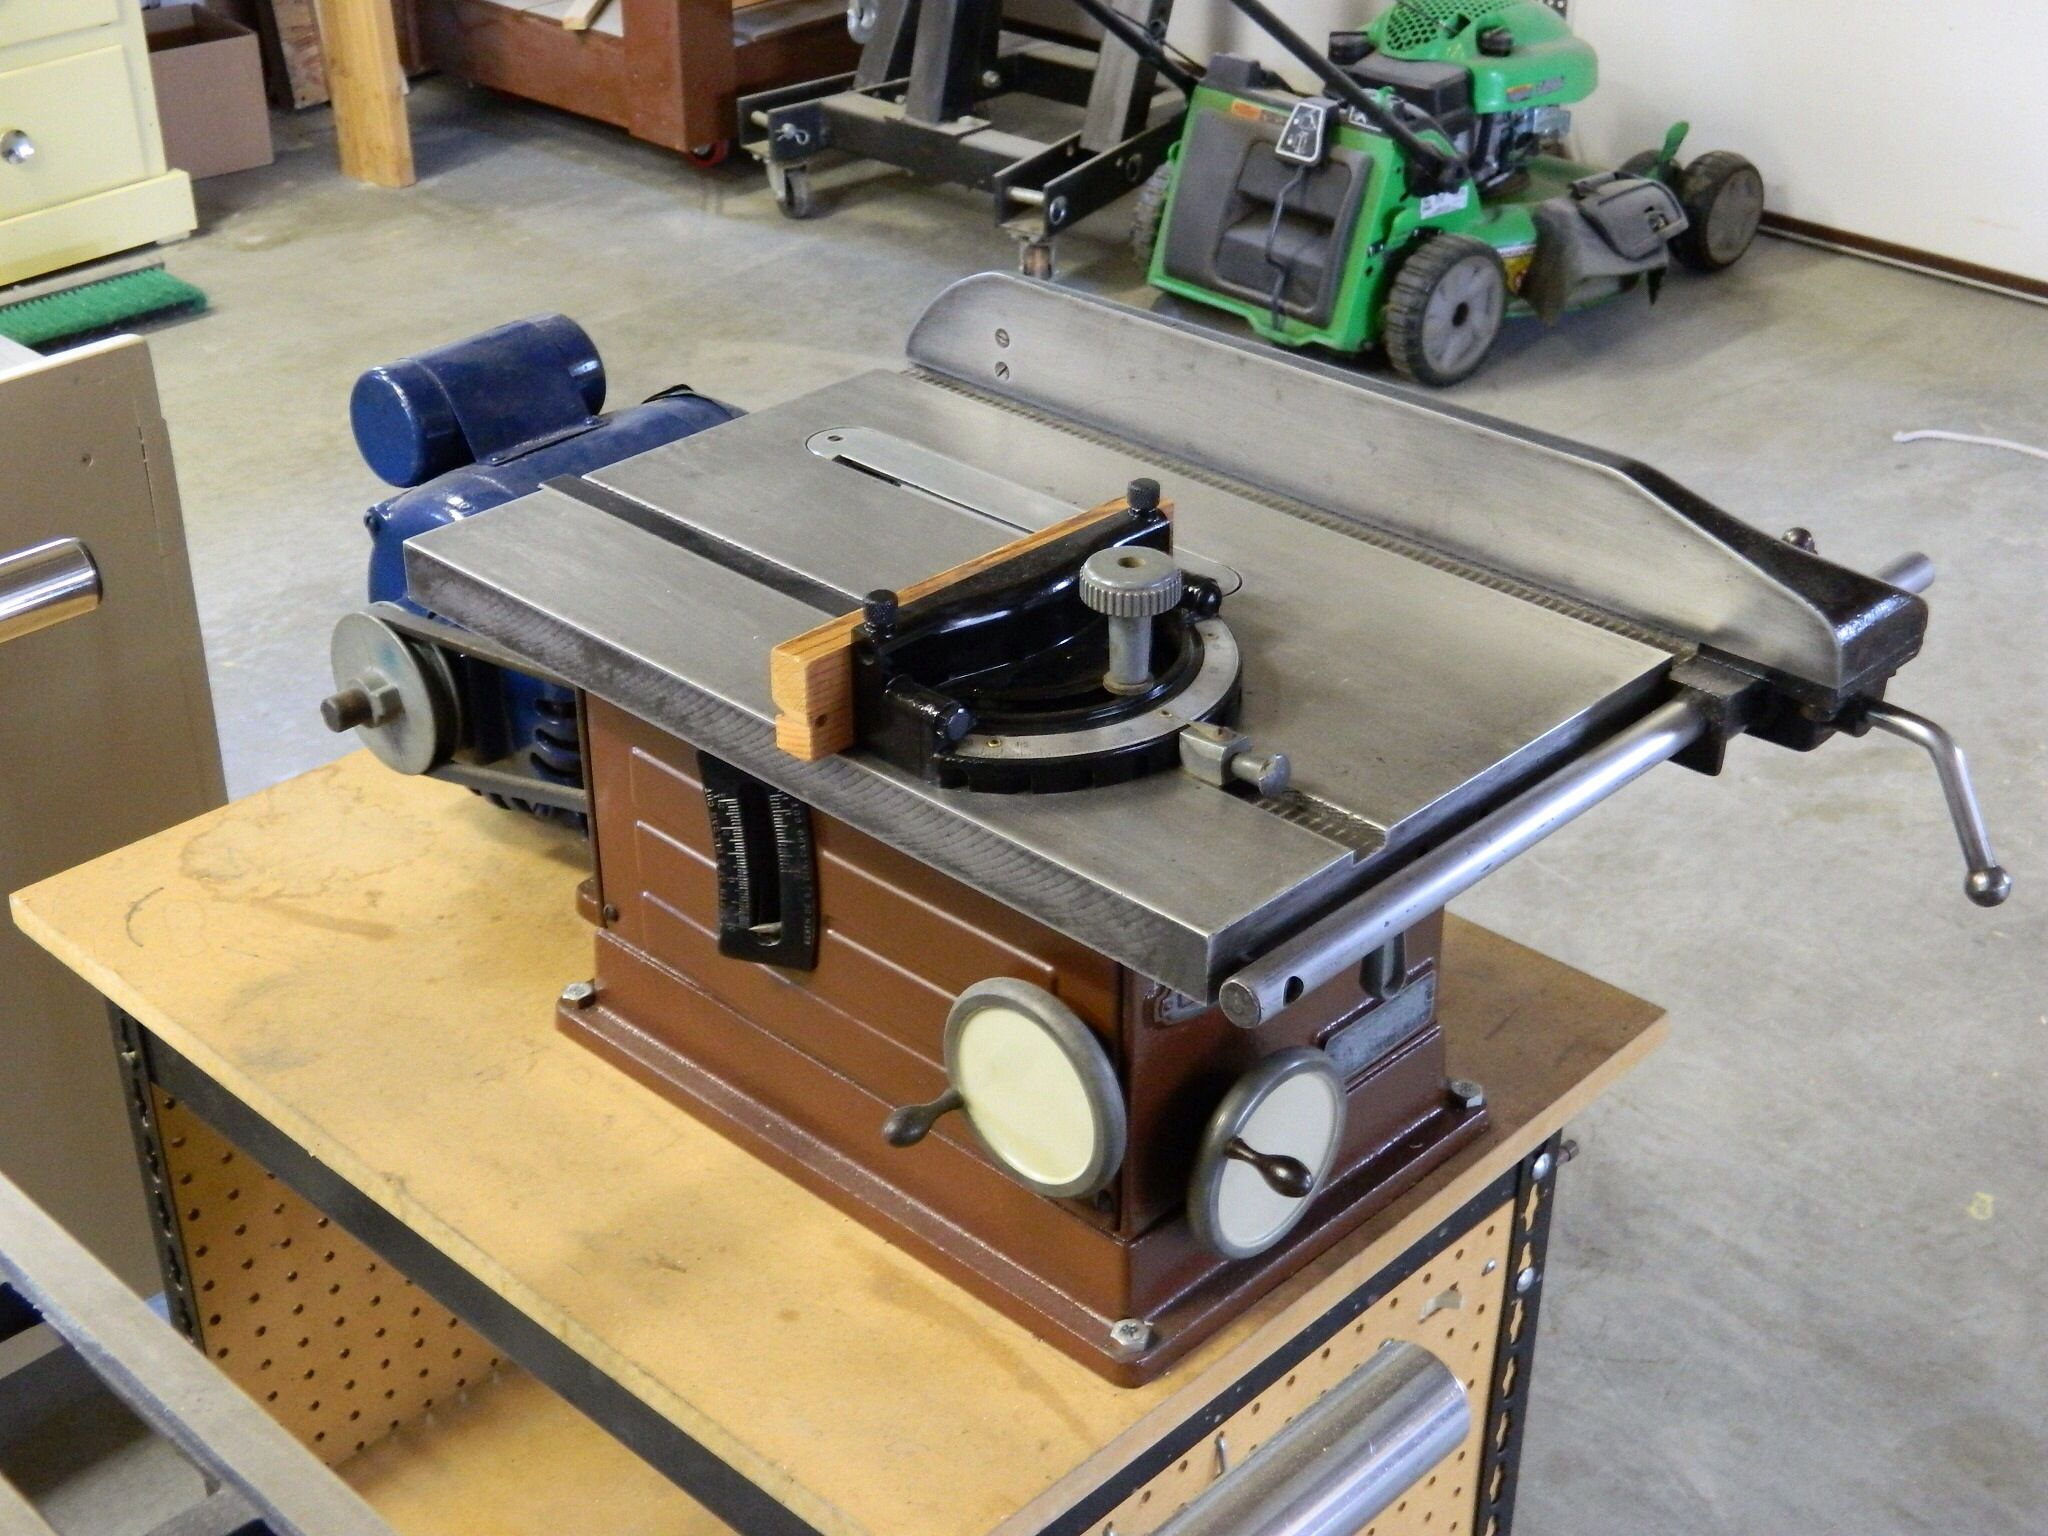 Restored Craftsman Table Saw …